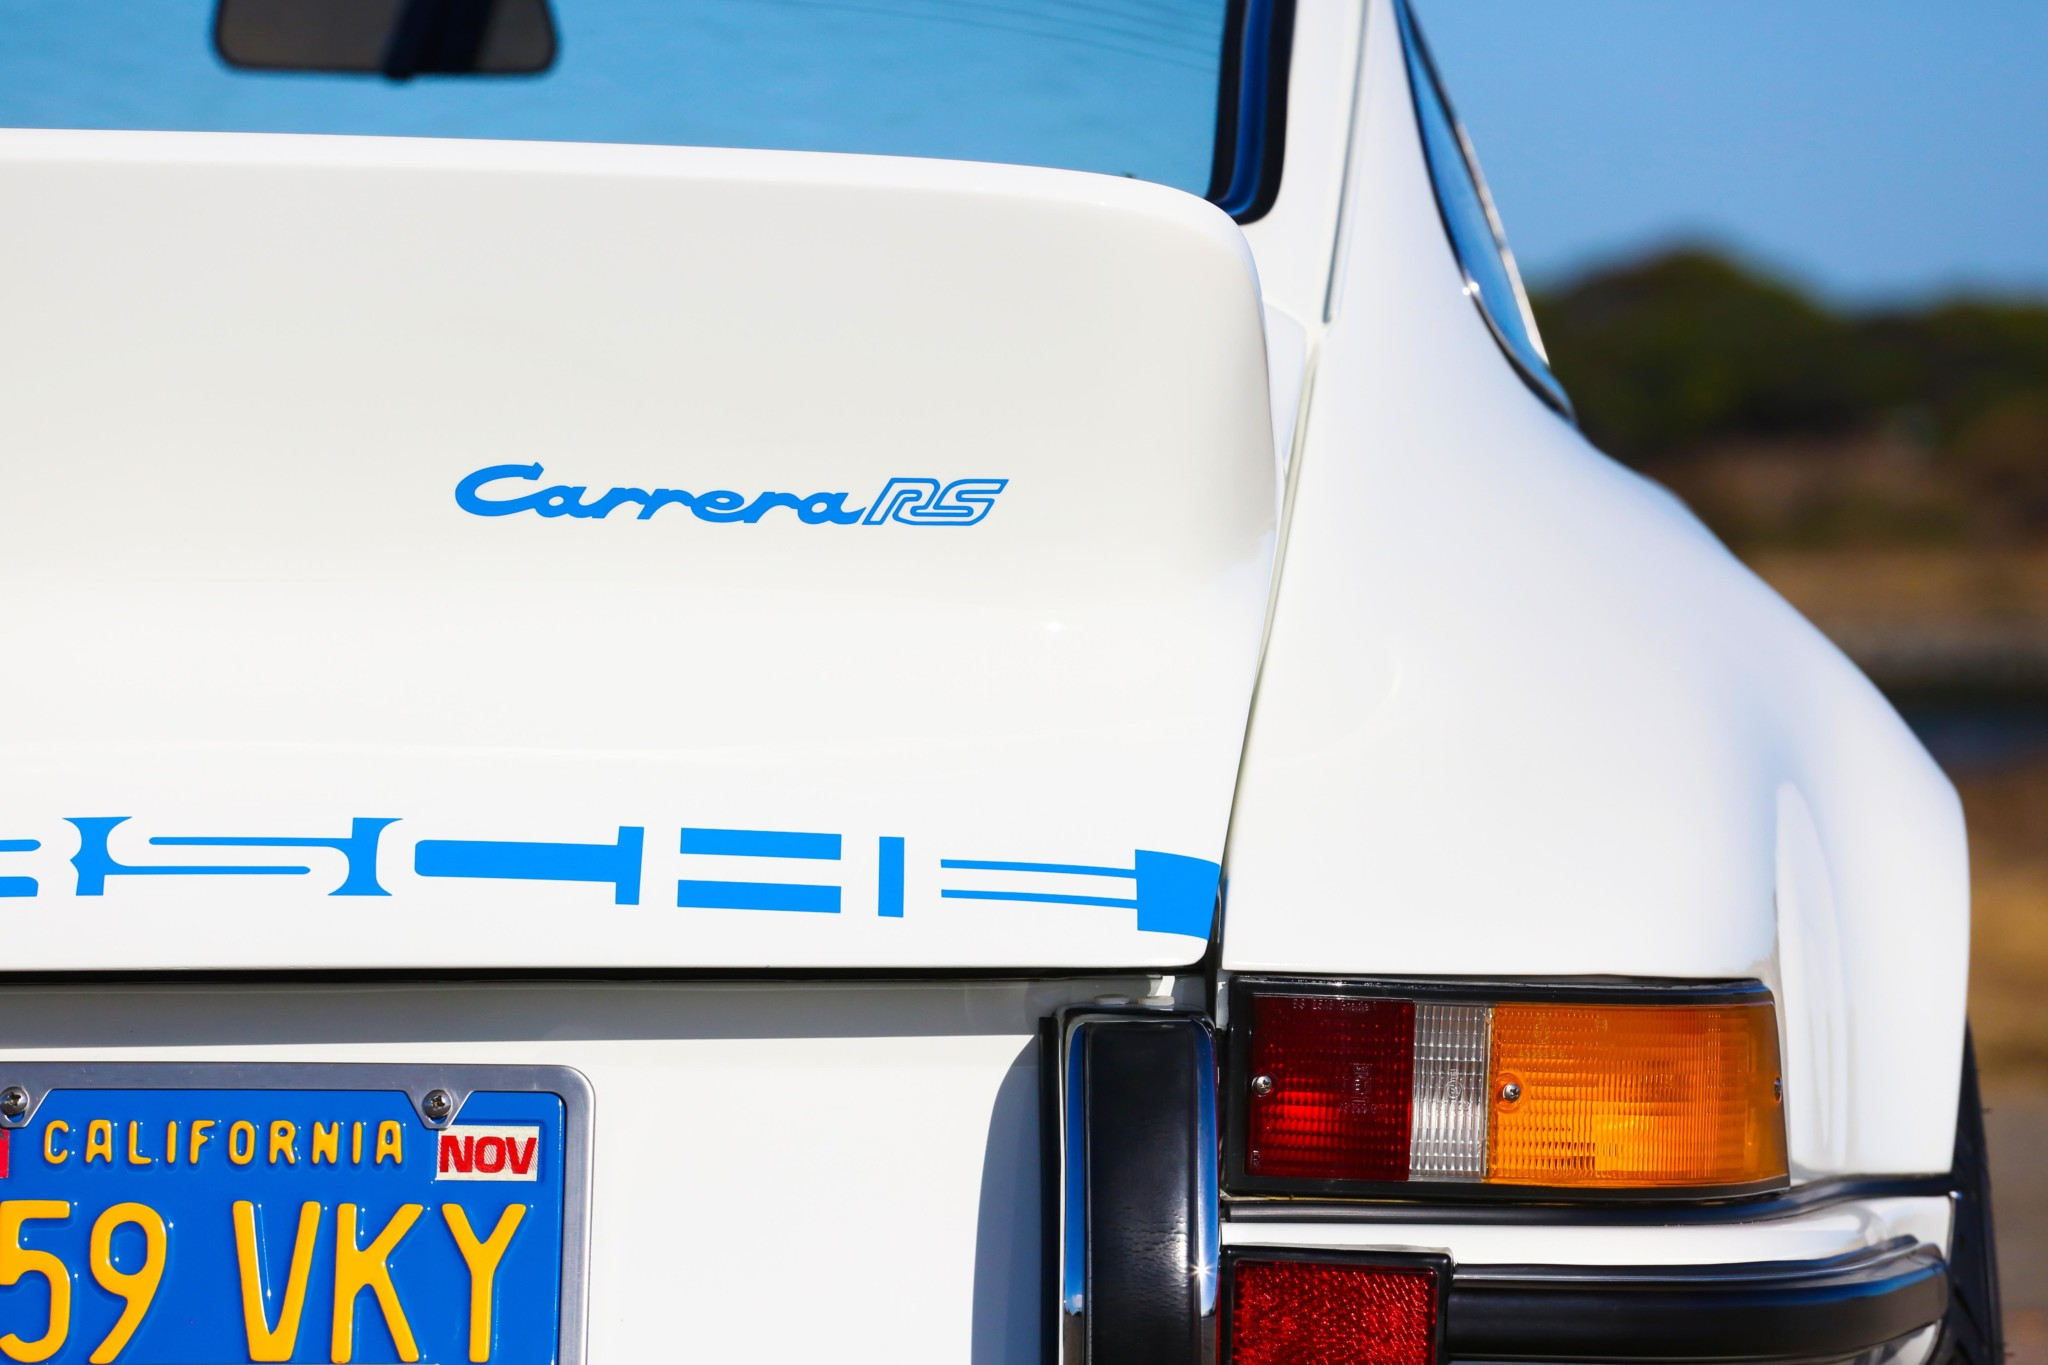 Porsche-911-Carrera-RS-2.7-1973-for-sale-20